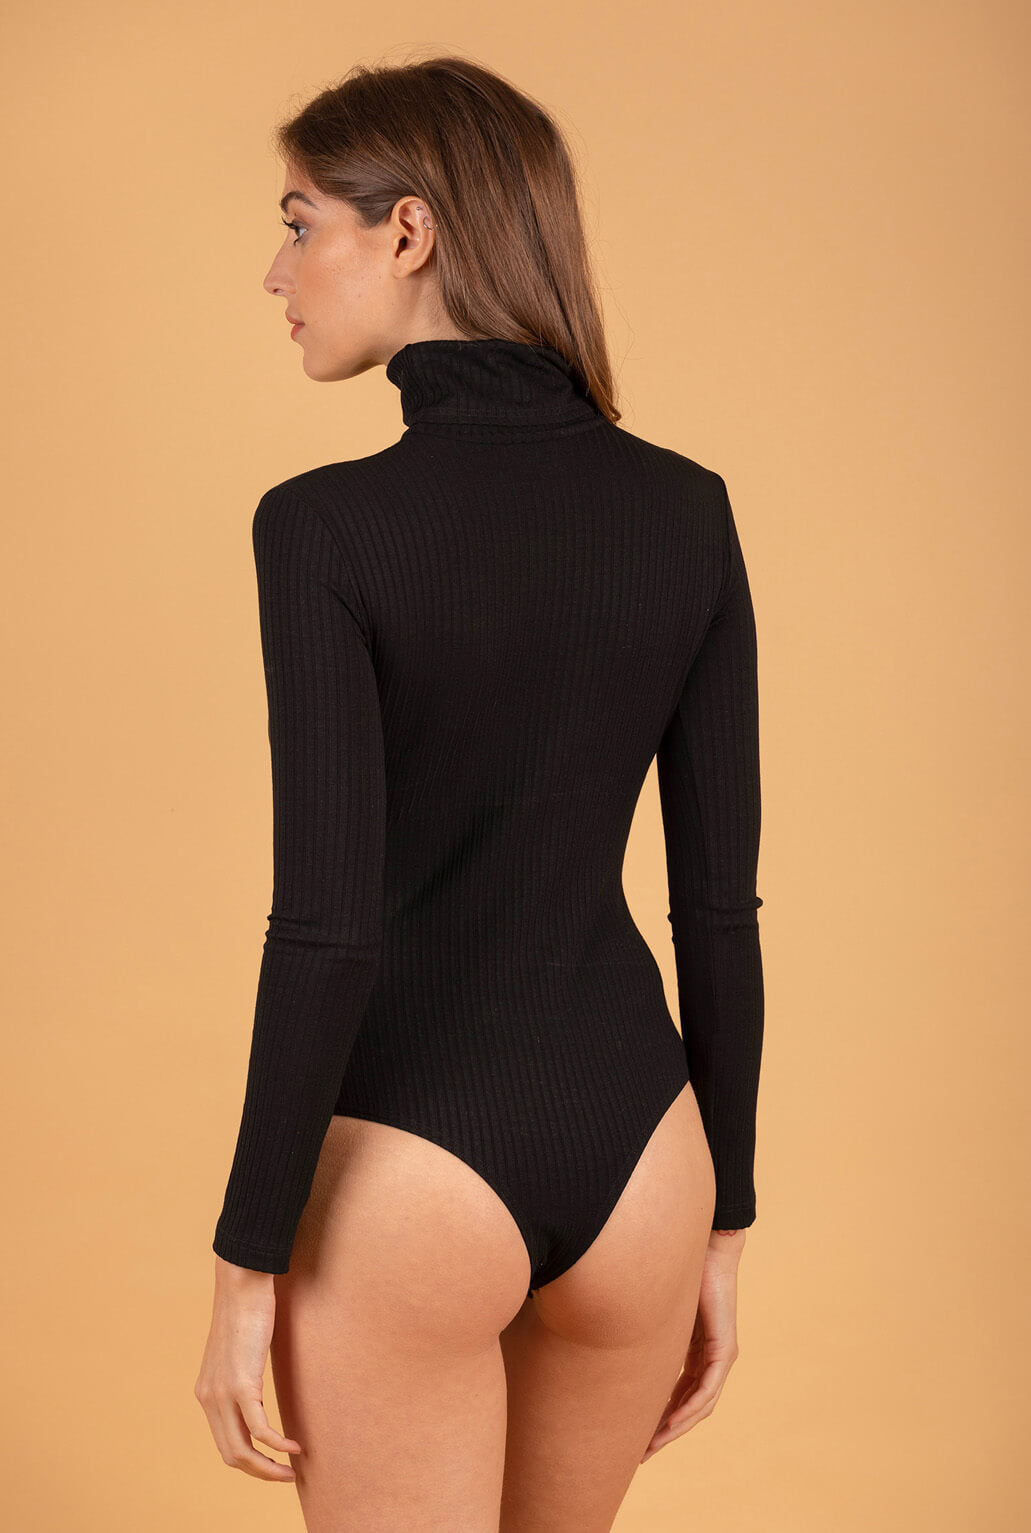 FLAIR_BODYSUITS_MADEINFRANCE_ROBIN_ COL ROULE NOIR